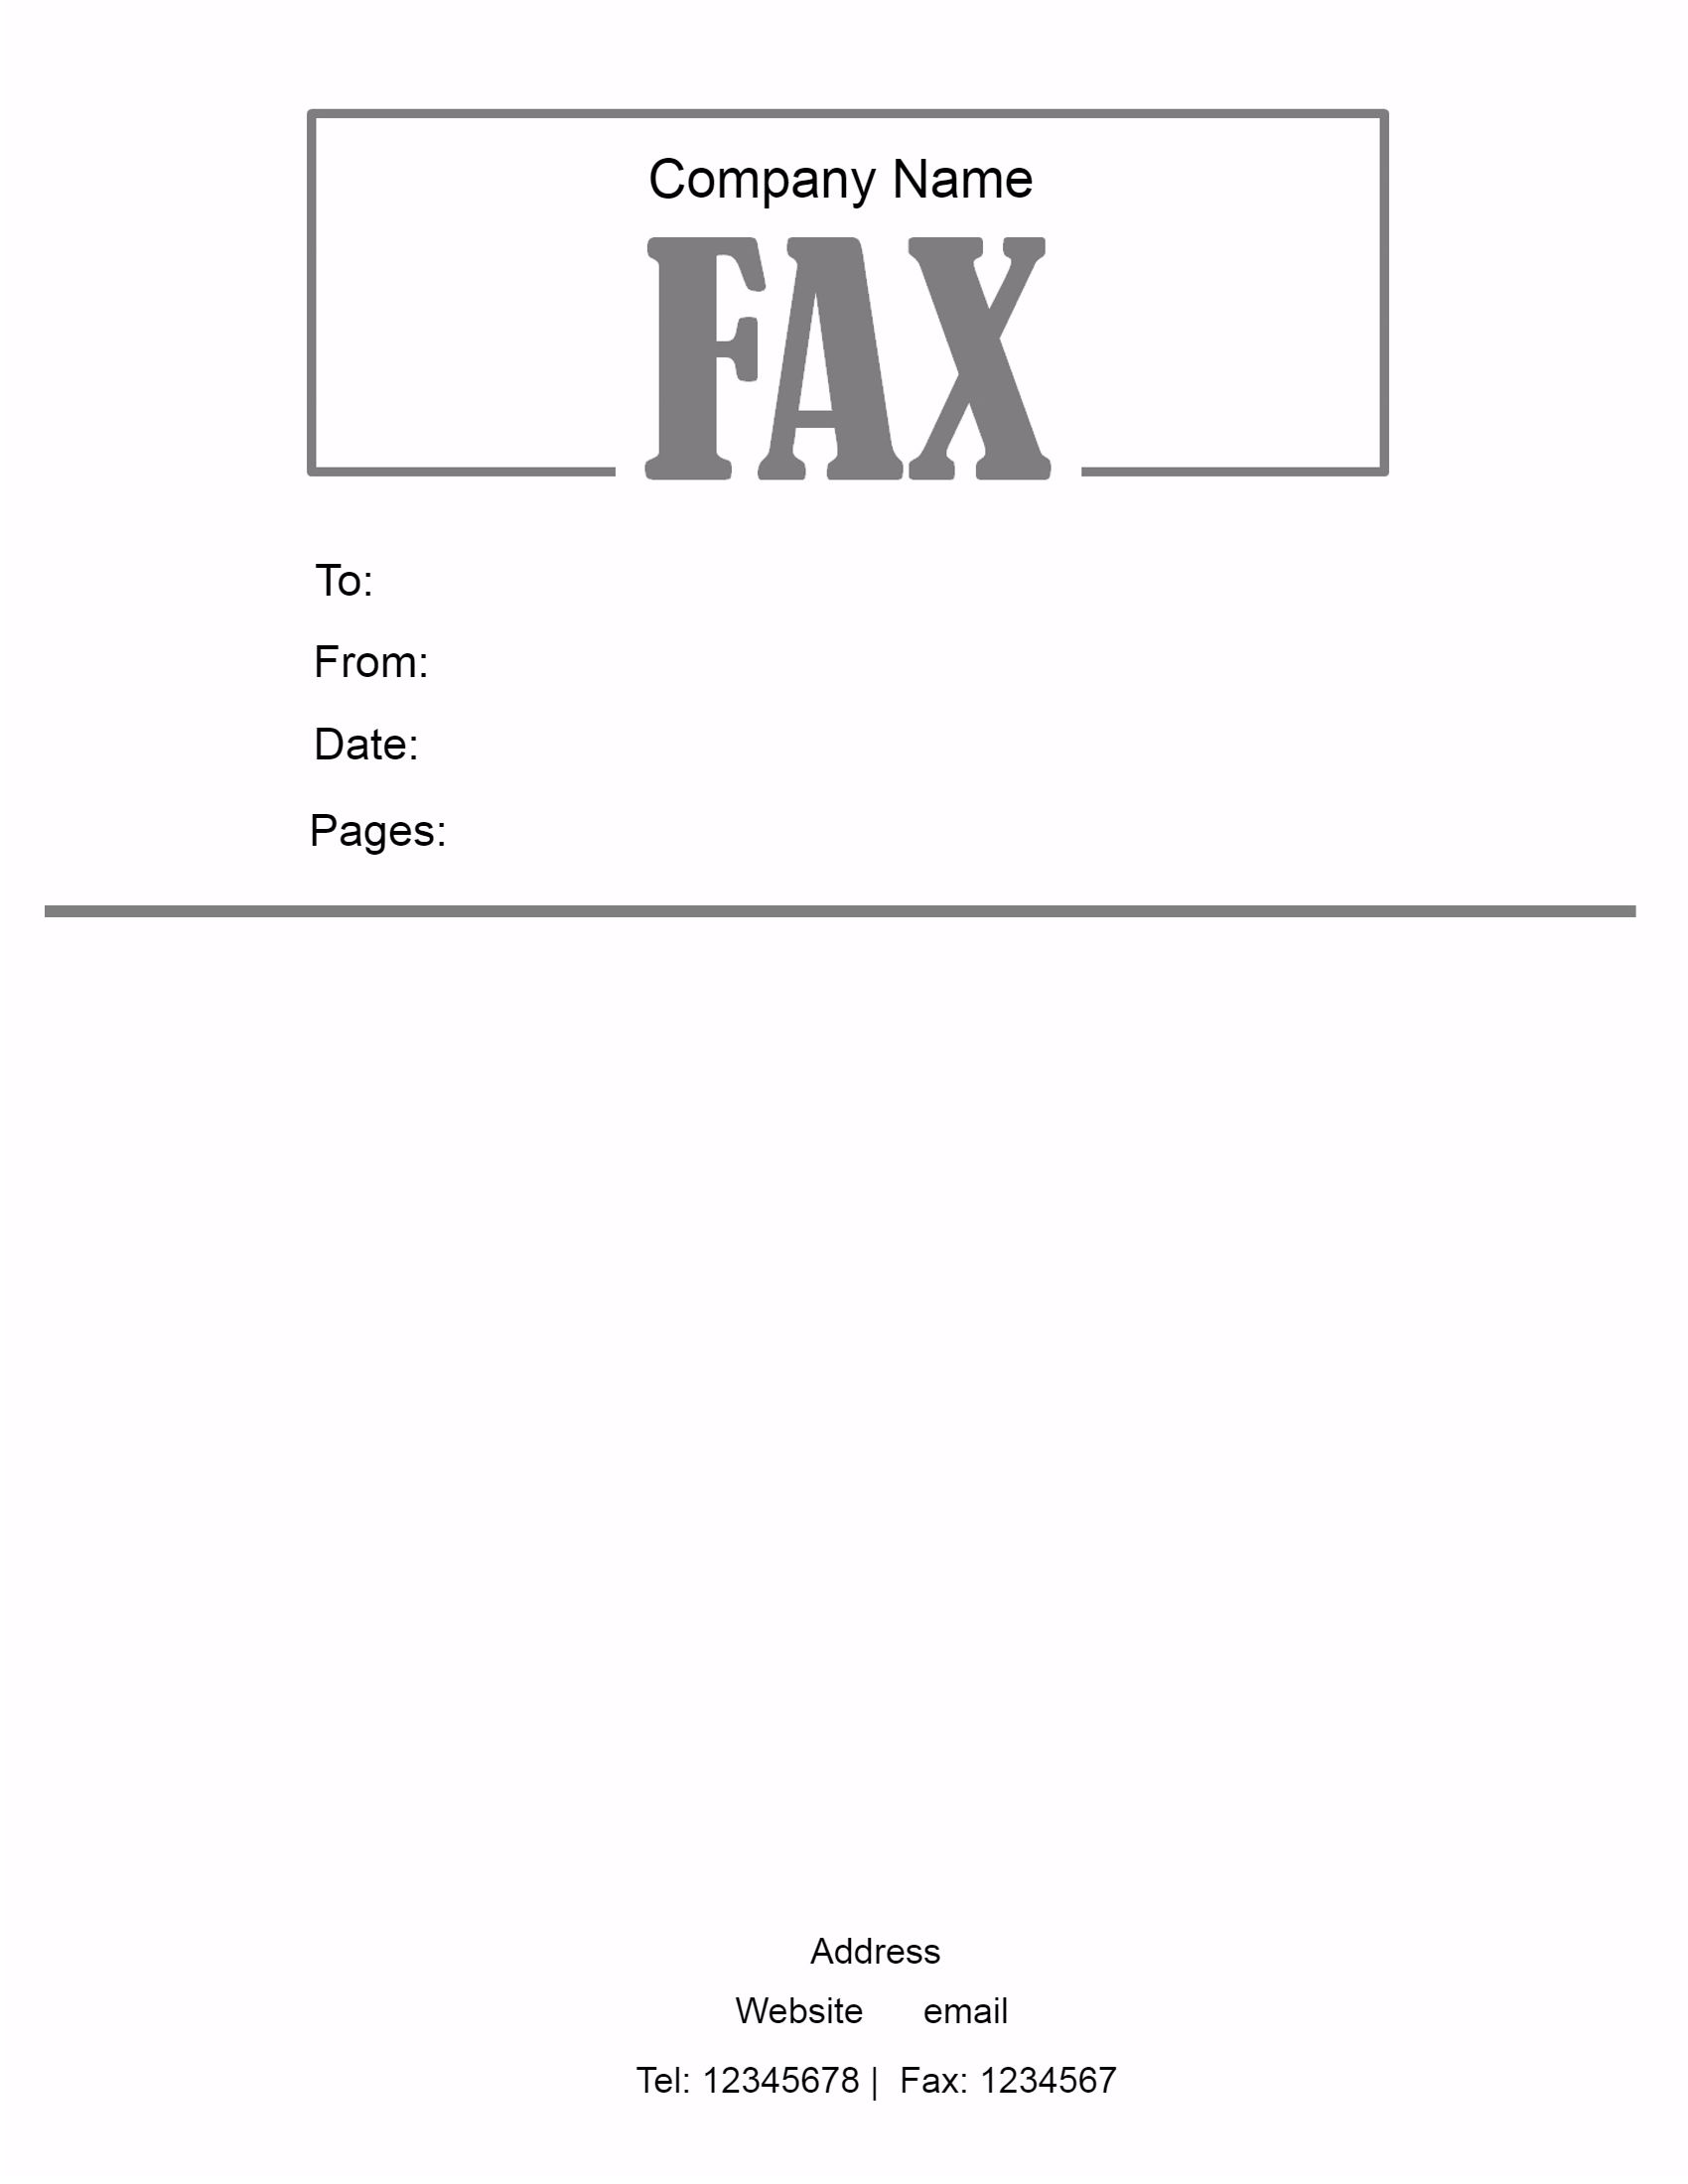 fax pages include cover sheet